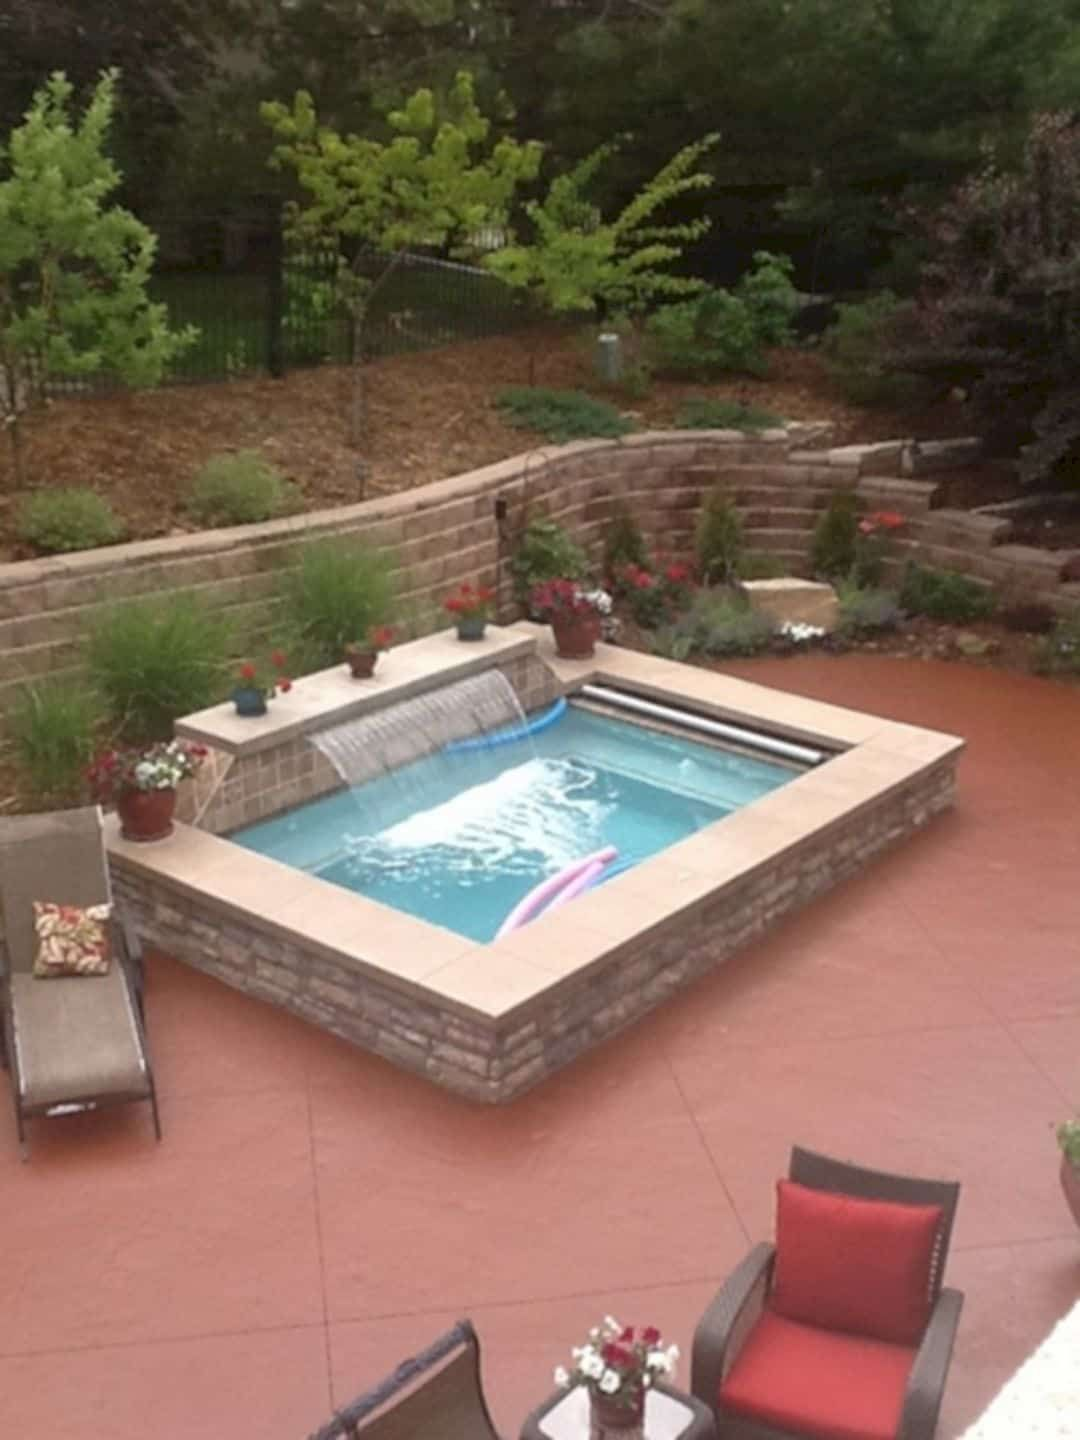 Coolest Small Pool Ideas With 9 Basic Preparation Tips In 2020 With Images Small Pool Design